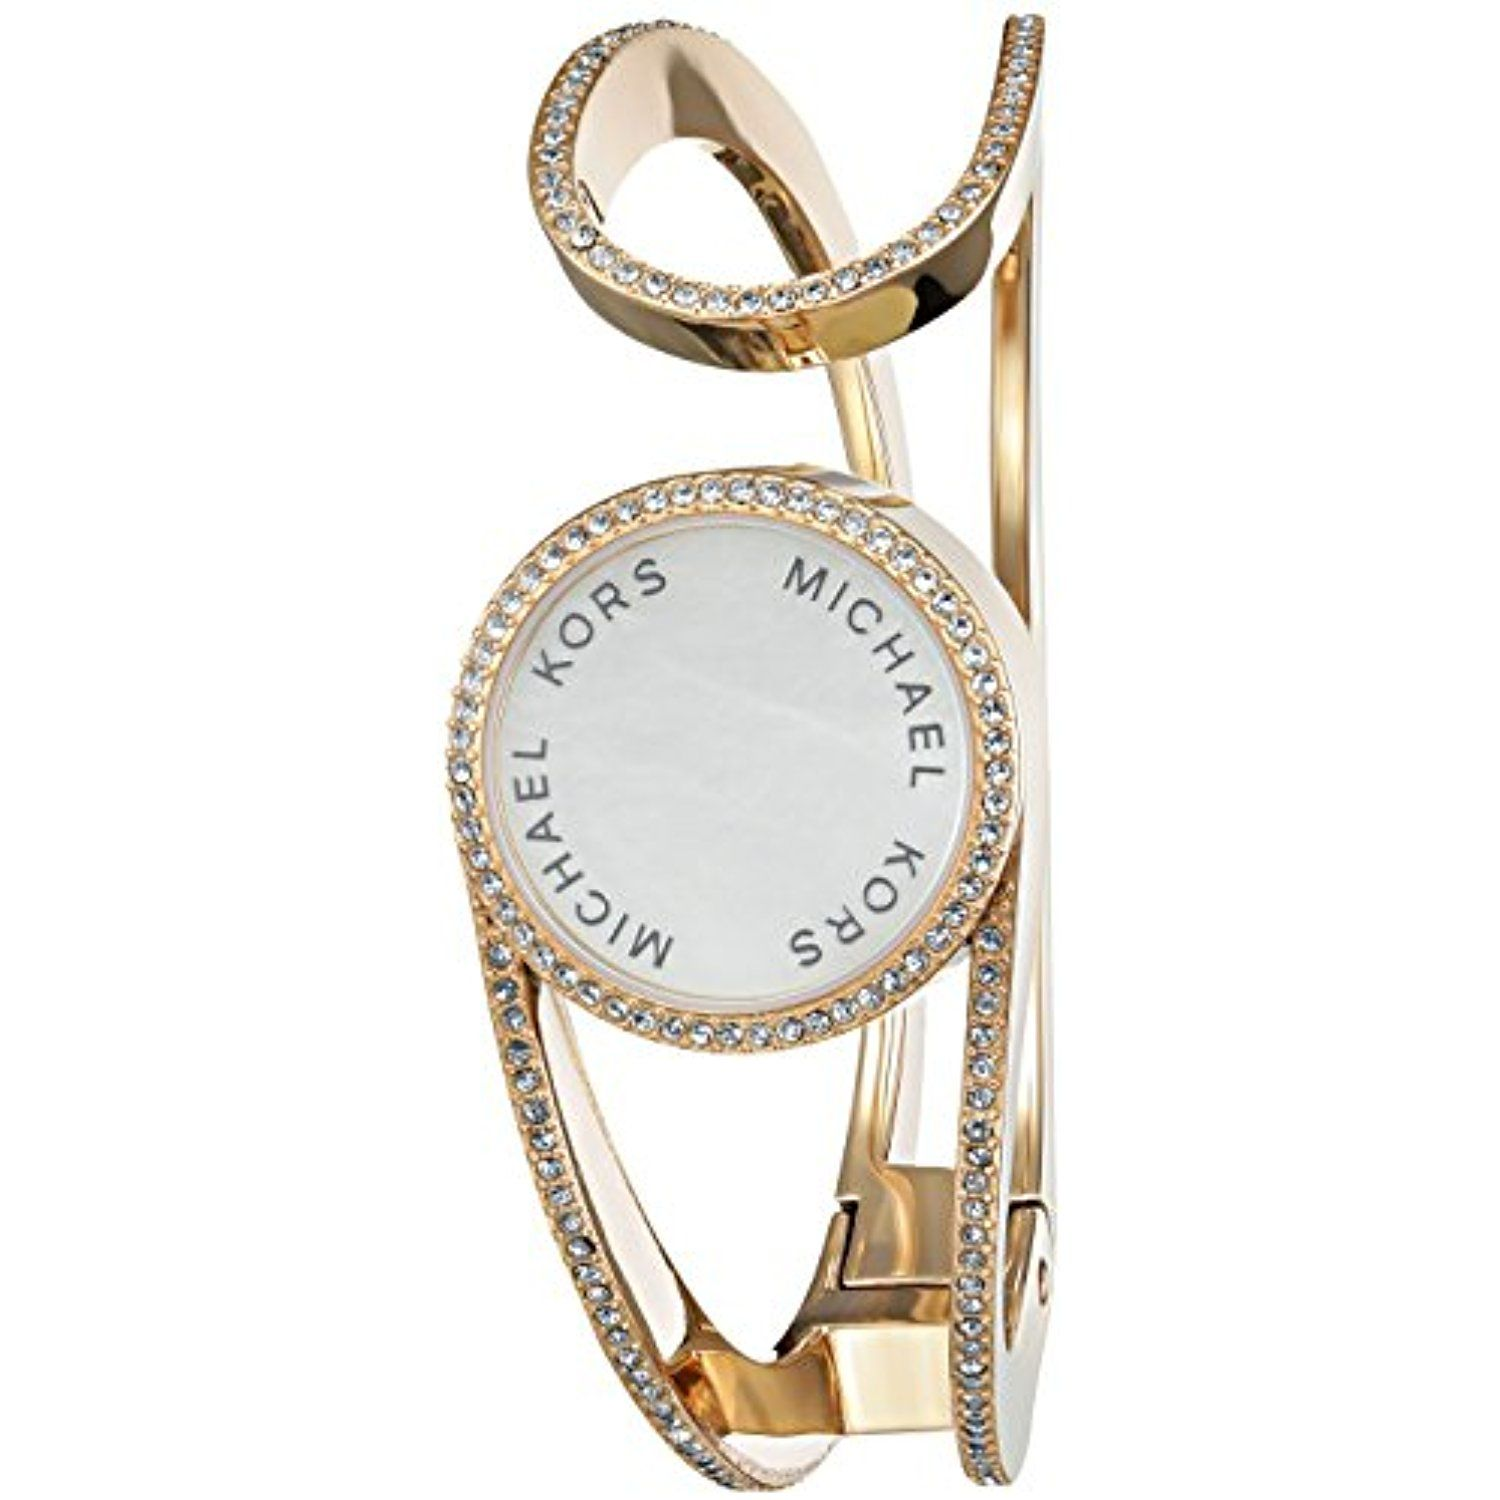 Michael Kors Thompson Tracker Bracelet You Can Get More Details By Clicking On The Image This Is An Affiliate Link Michael Kors Pearl Bracelet Bracelets